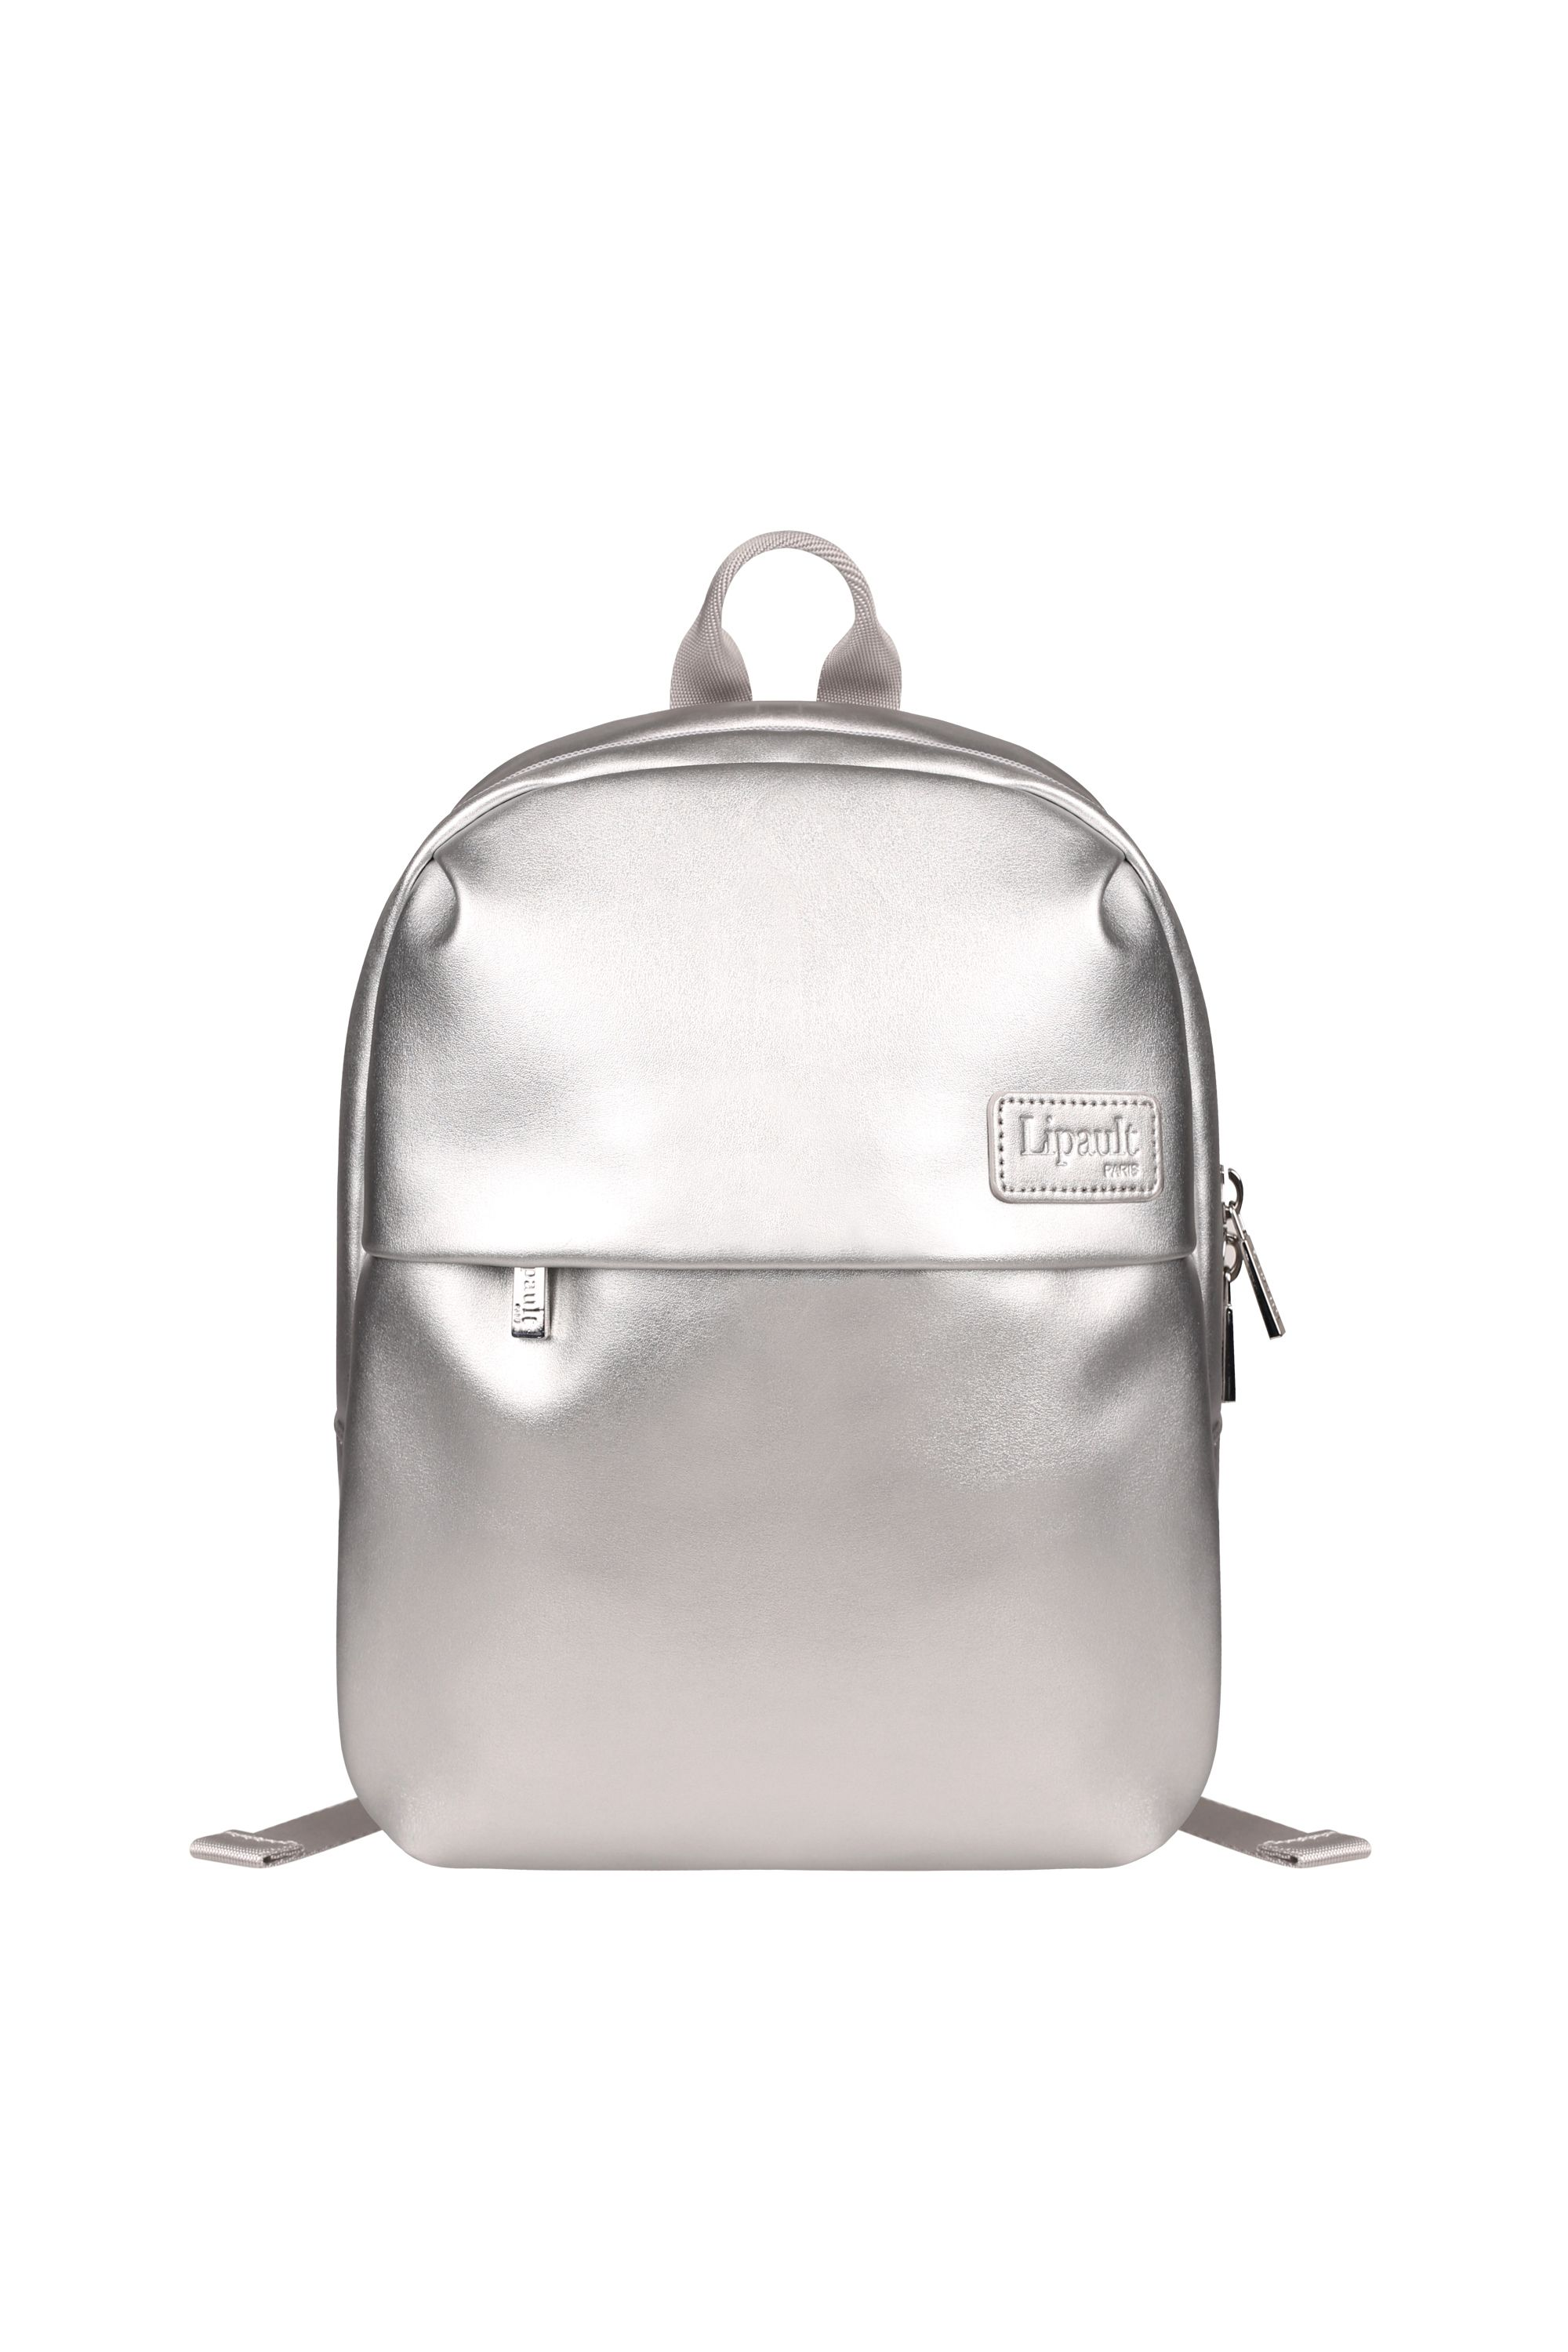 Lipault Miss Plume Silver Backpack, Silver